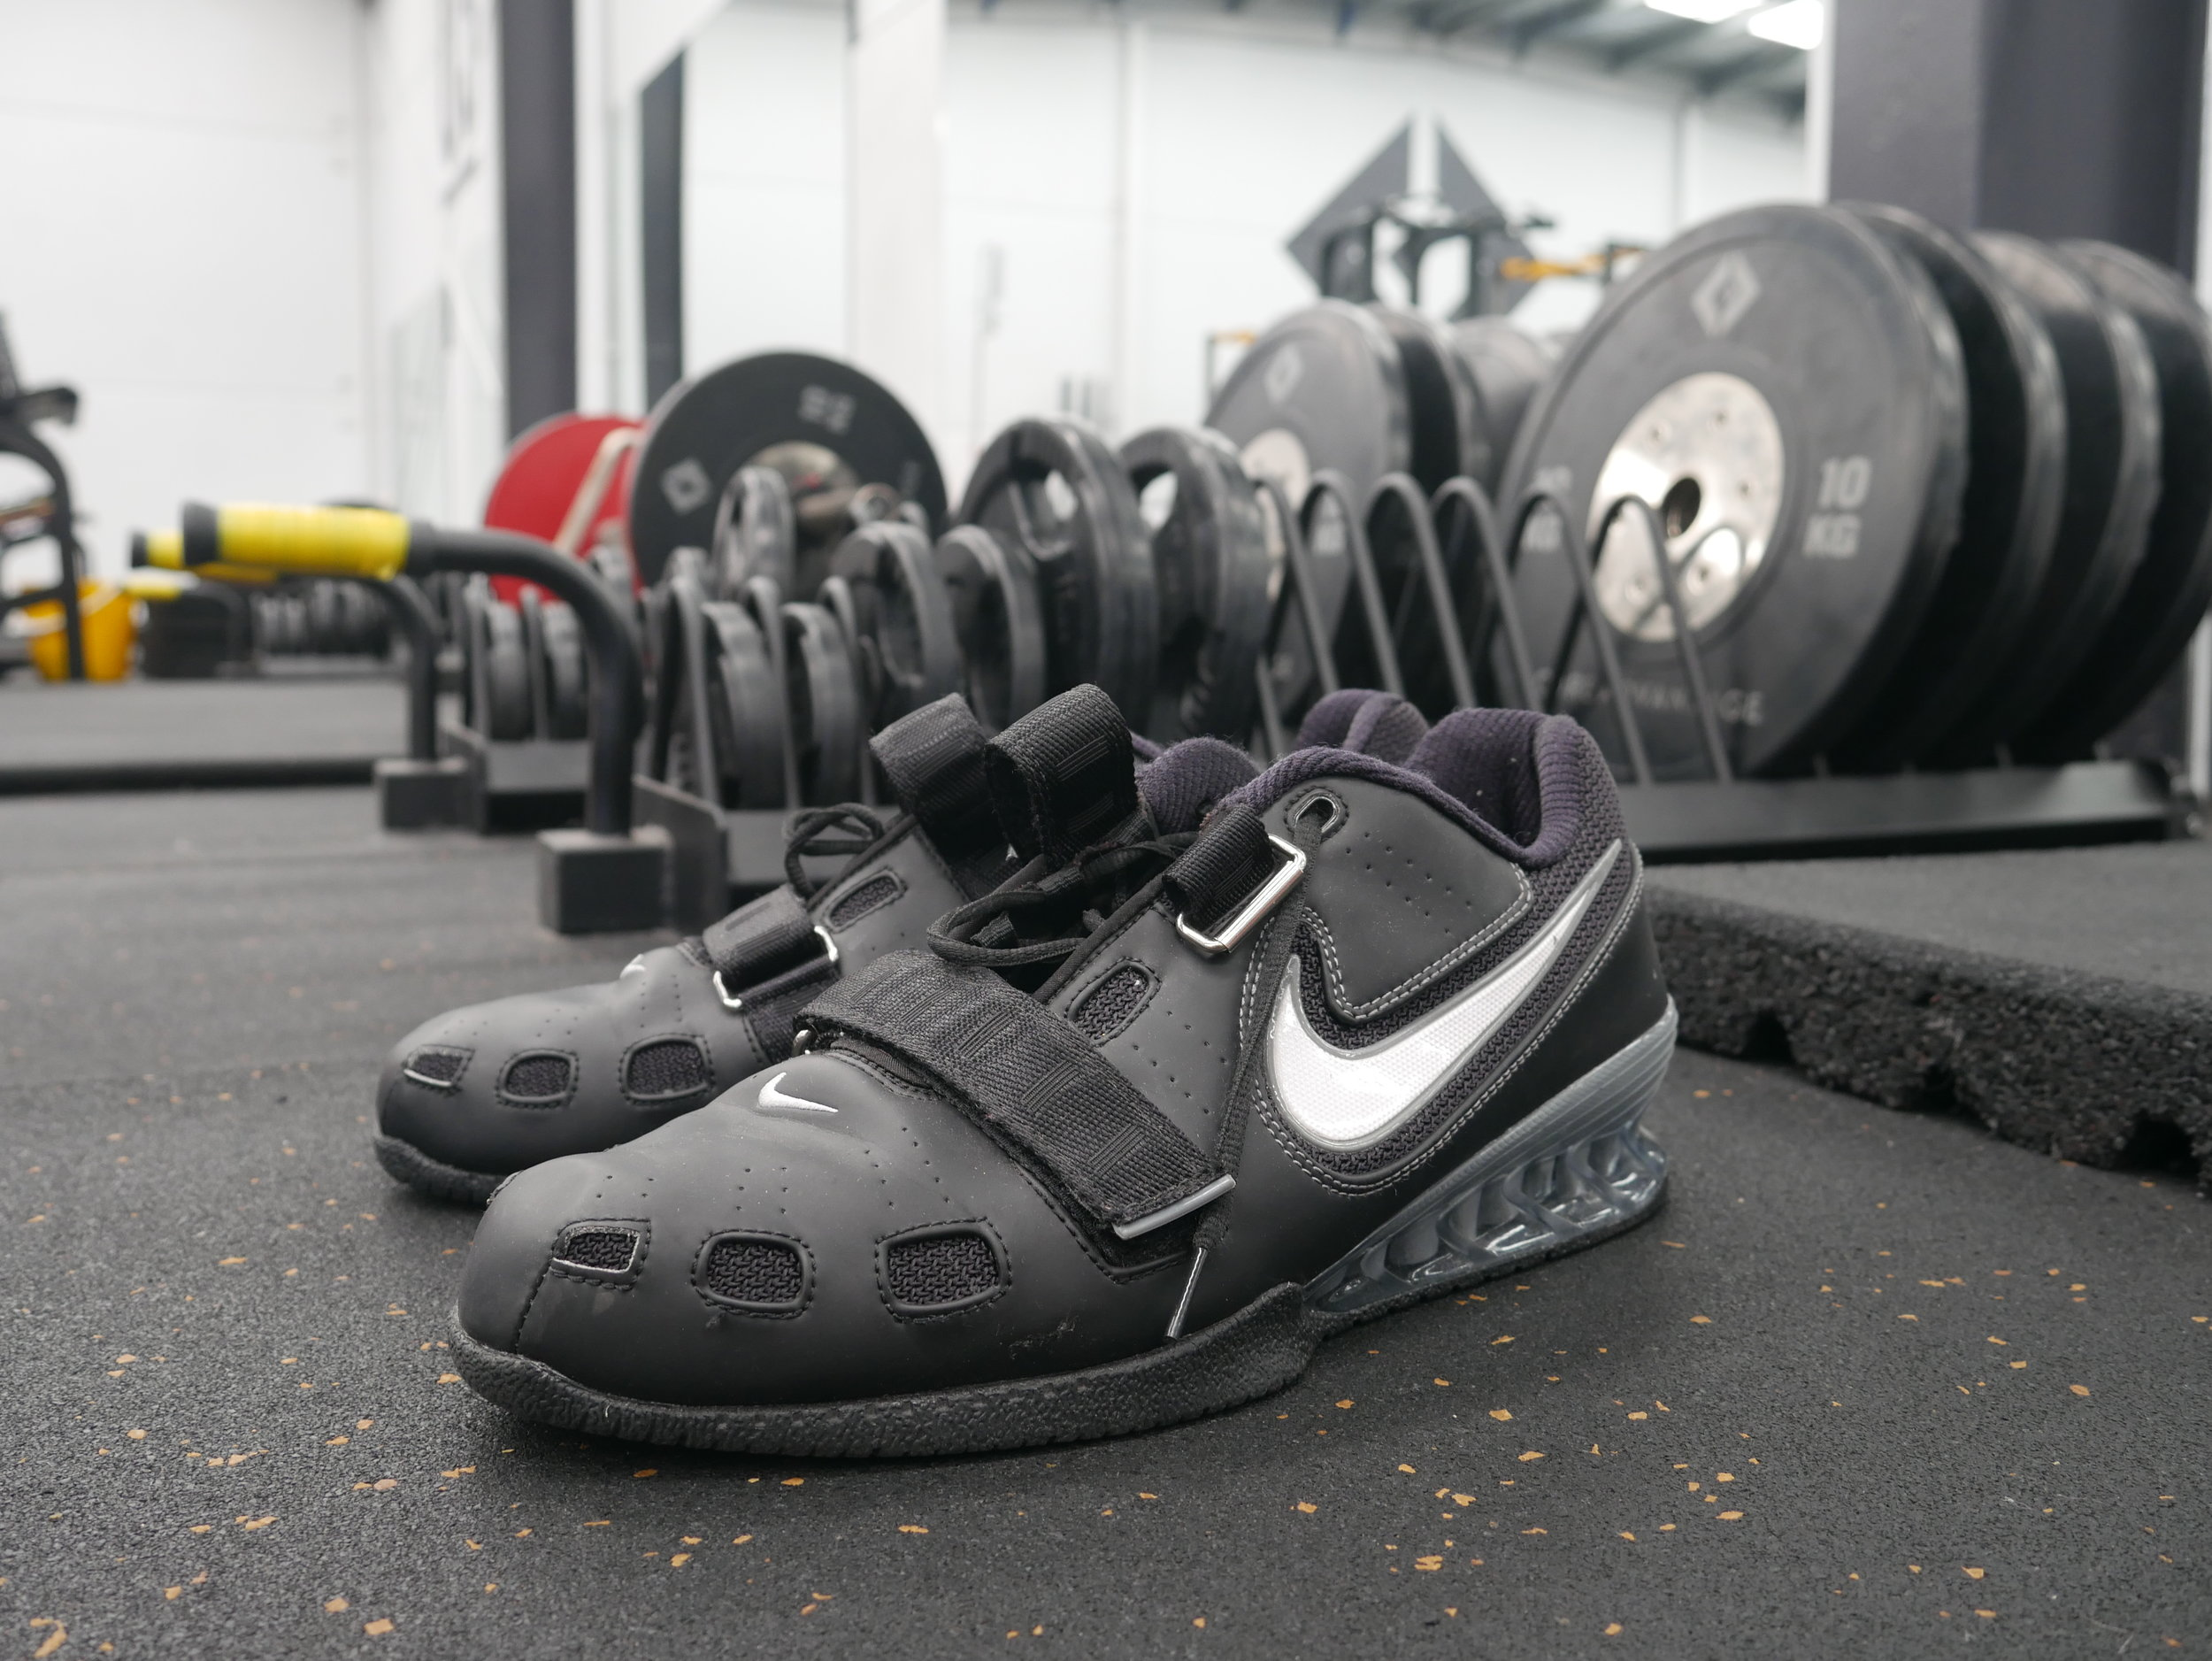 Olympic lifting shoes with a 3/4 inch elevation